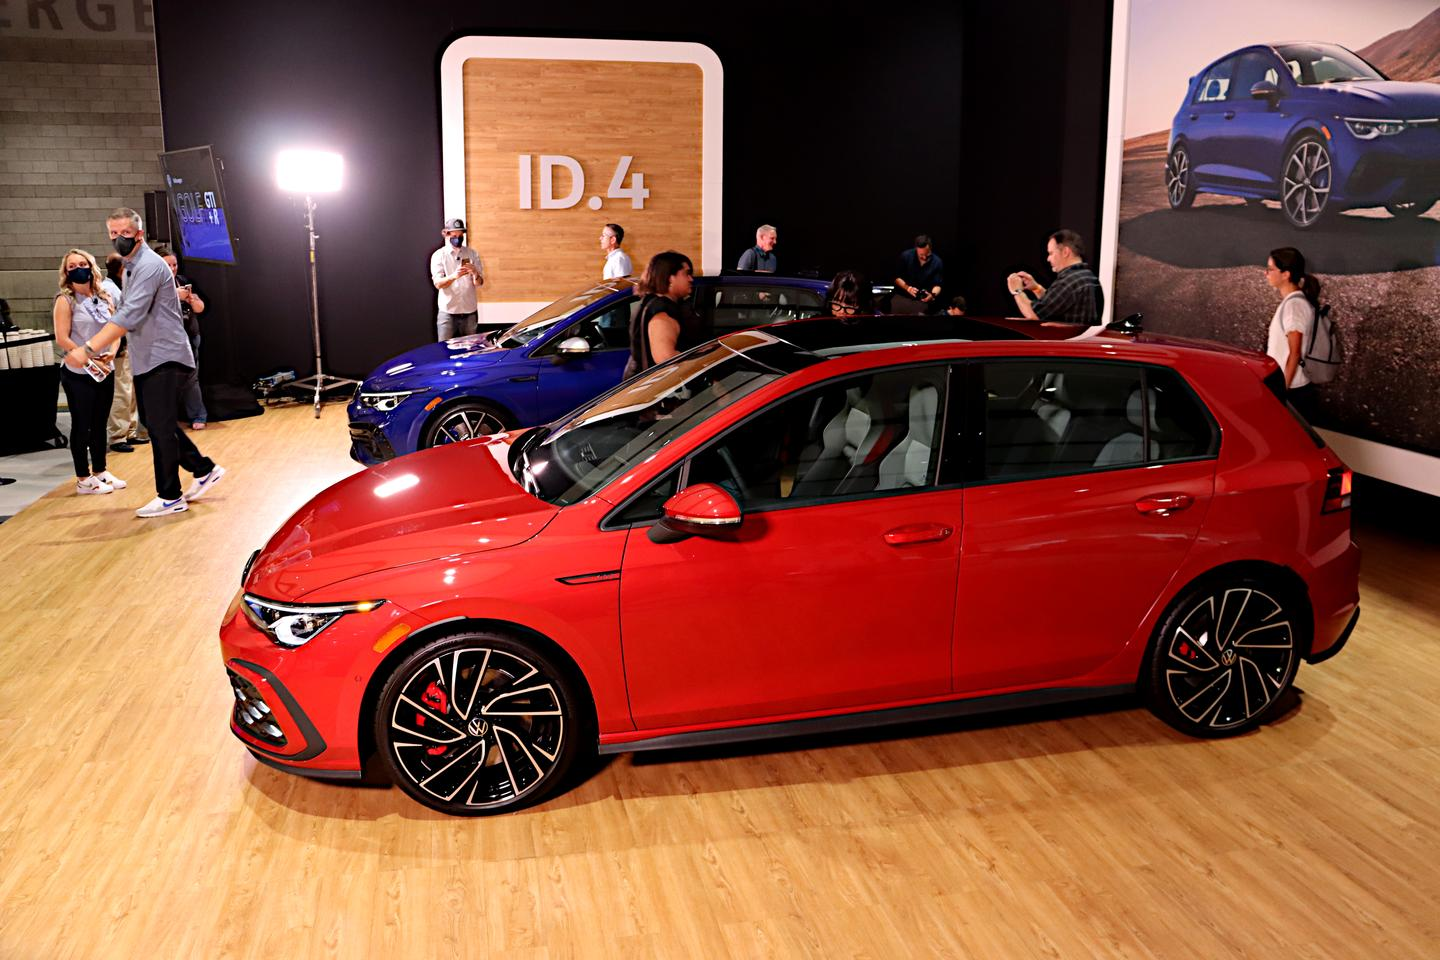 Debuting at the Chicago Auto Show were the Volkswagen Golf GTI (shown) and Golf R